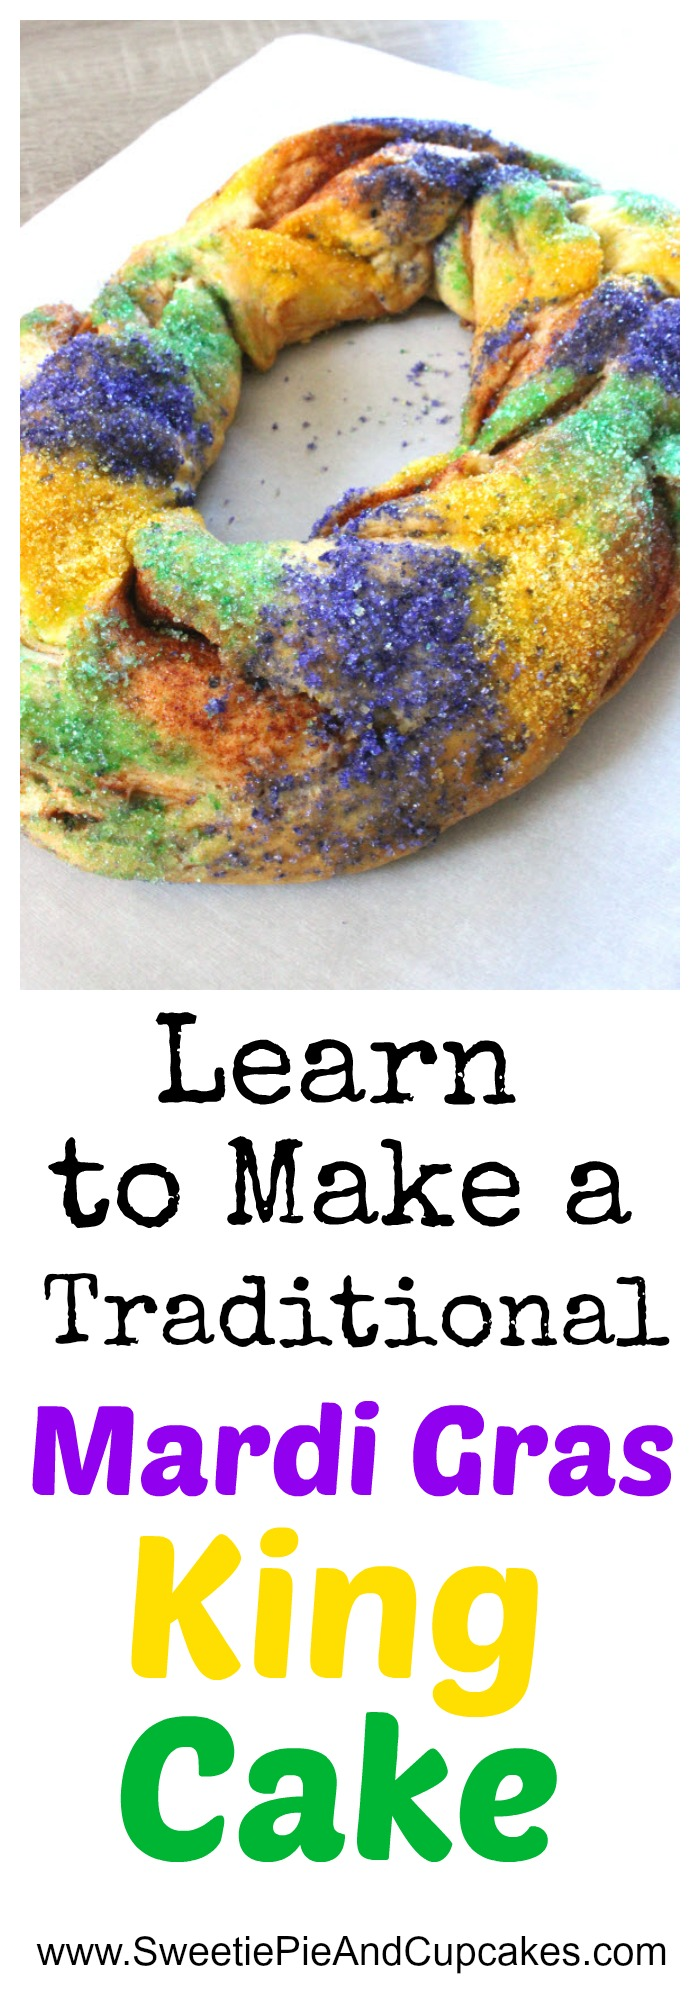 Learn to make a Traditional Mardi Gras King Cake